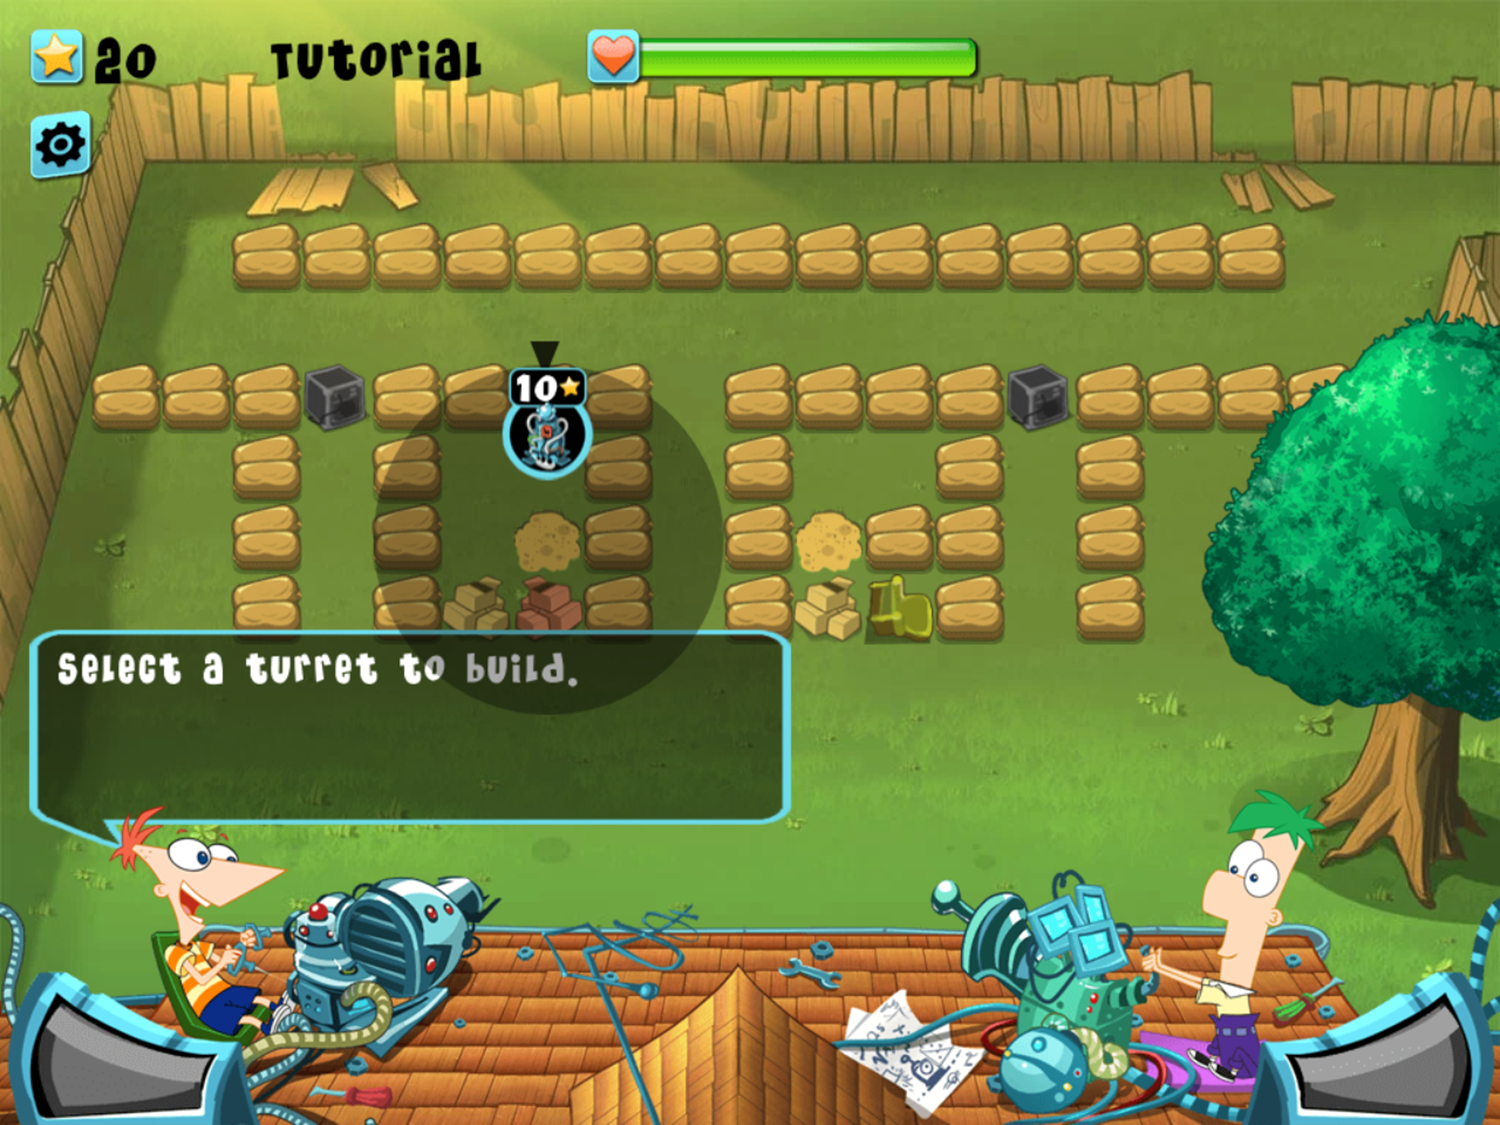 Phineas and Ferb Backyard Defense Game Instructions Screenshot.